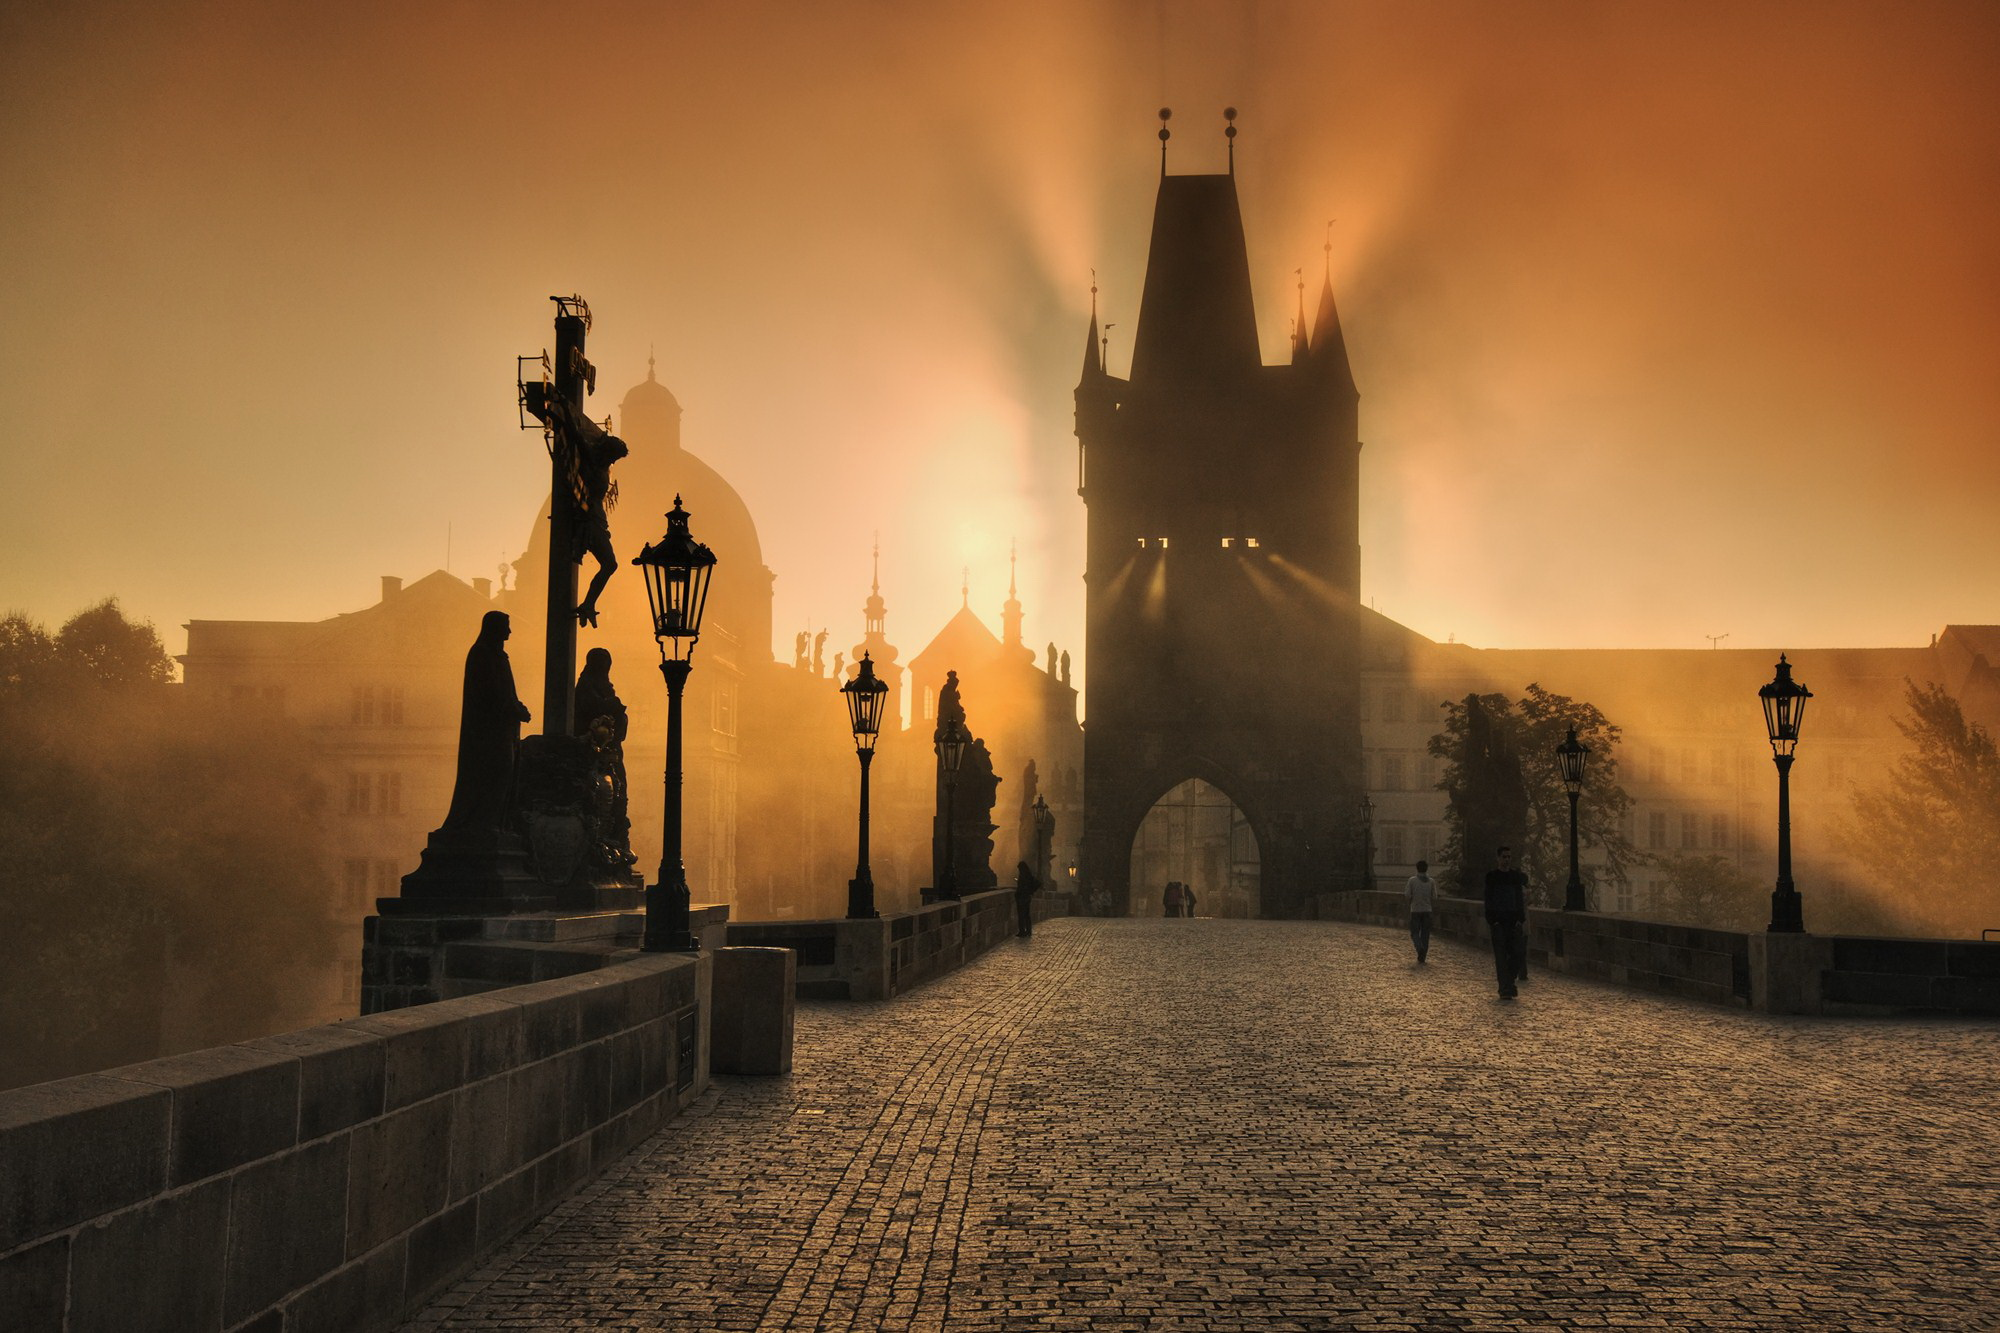 Golem, Faust, astronomer Tycho de Brahe or Princess Libuše at Vyšehrad Castle ... are you wondering what made Prague magical and mystical in the past?